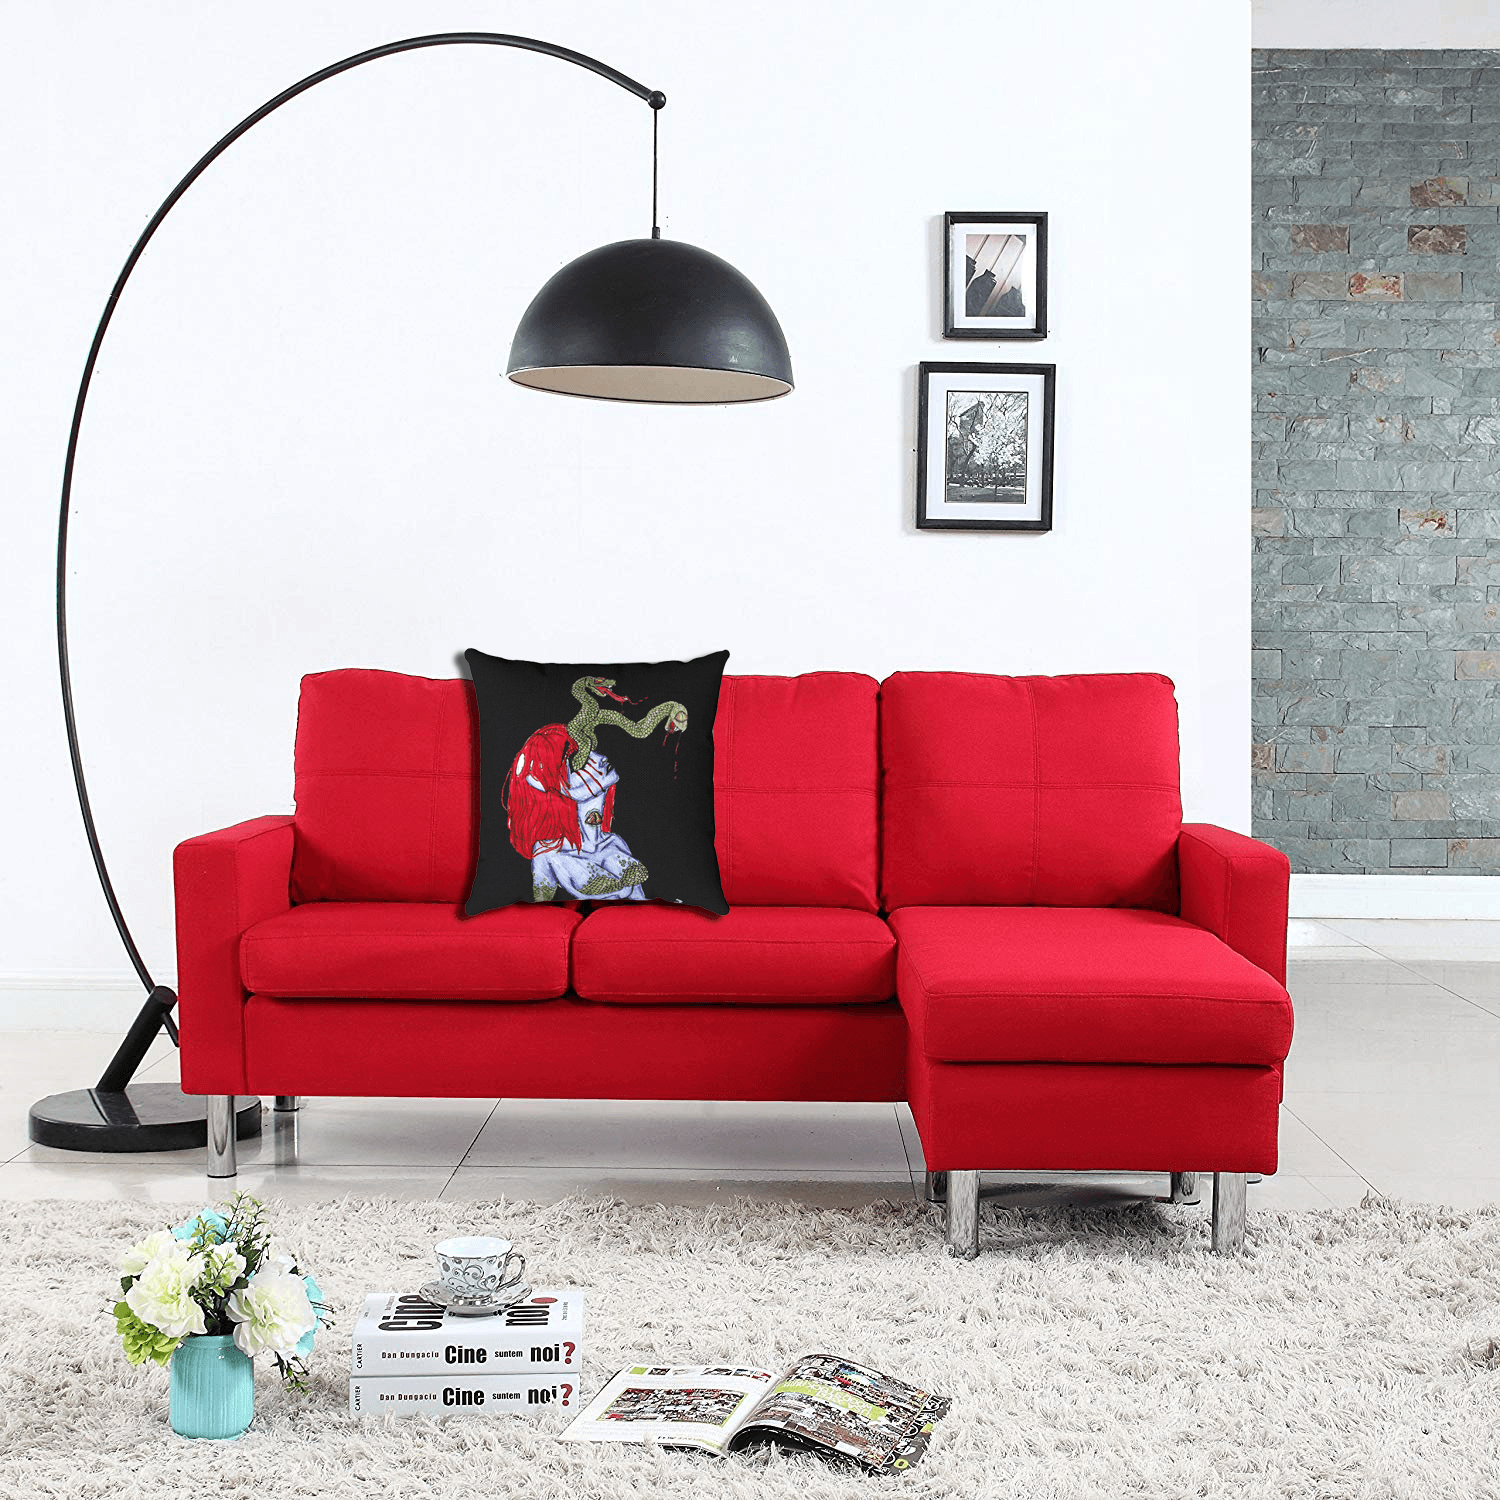 Scales Accent Pillows  by Ayanna Ali paired with  Red Modern Small Space Reversible Linen Fabric Sectional Sofa